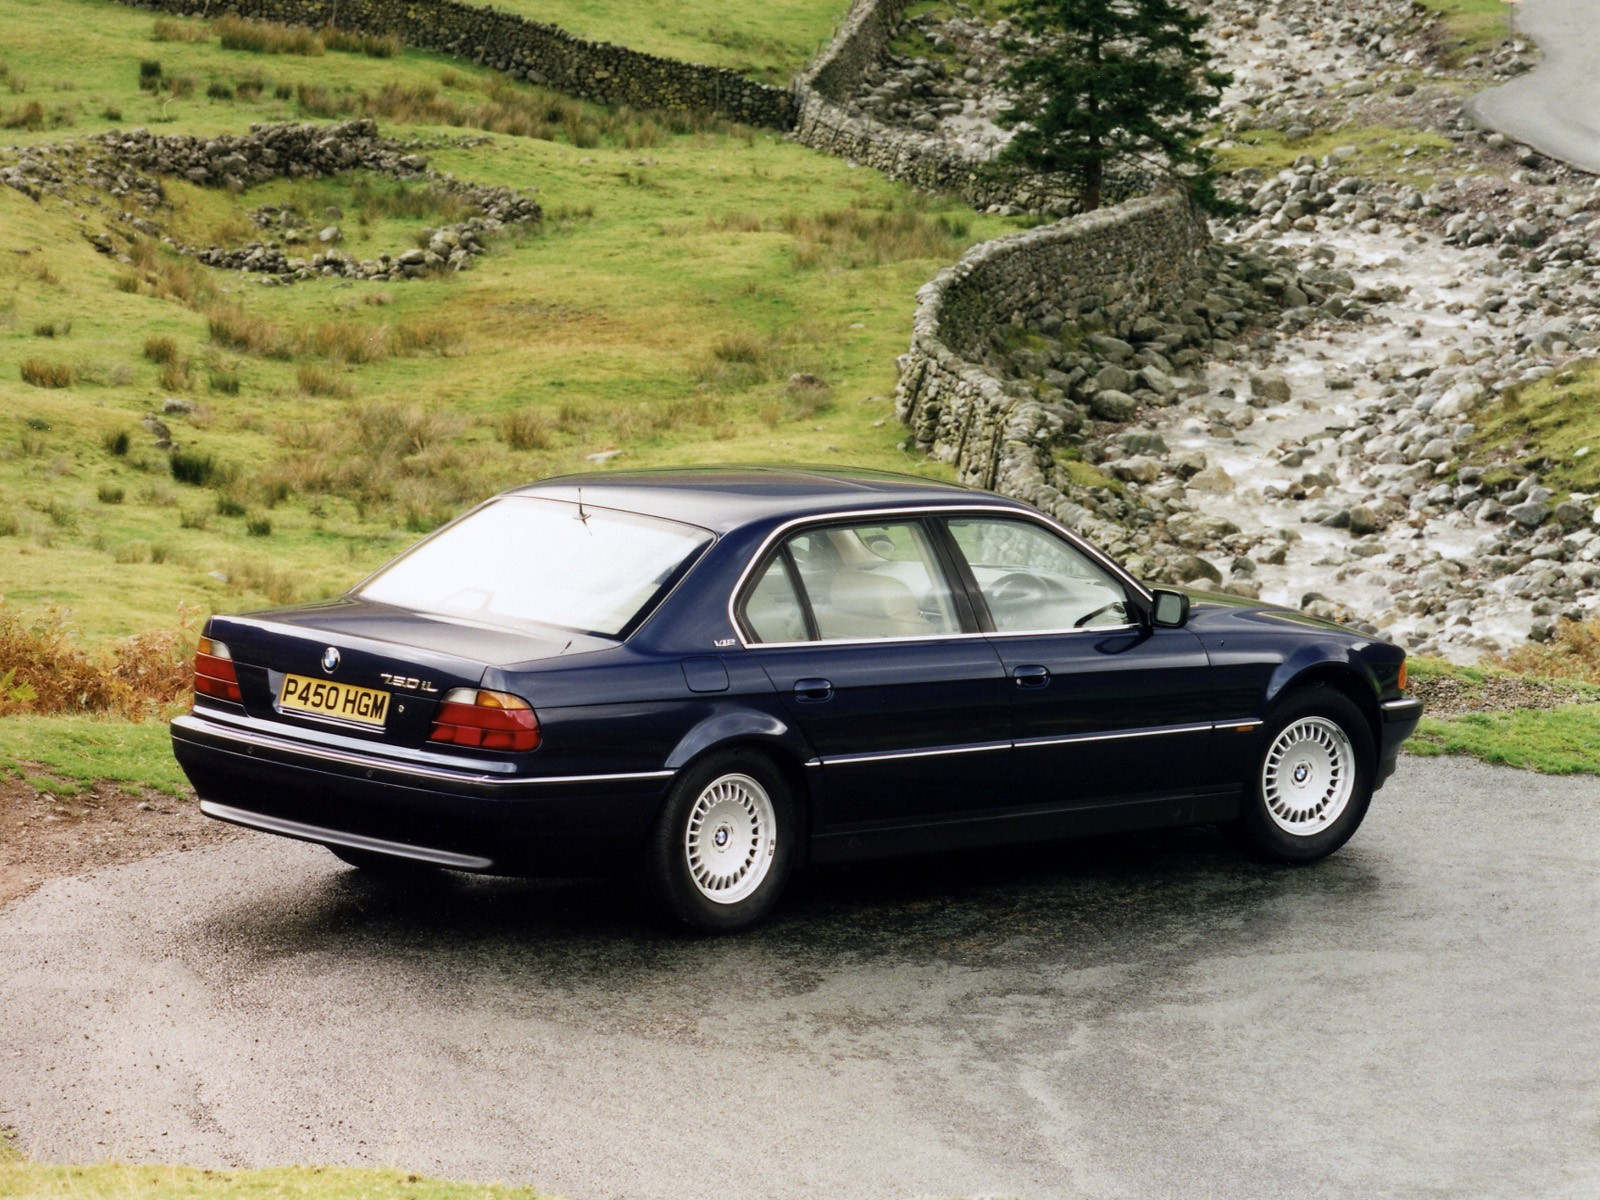 BMW 7 series 730i 1995 photo - 8